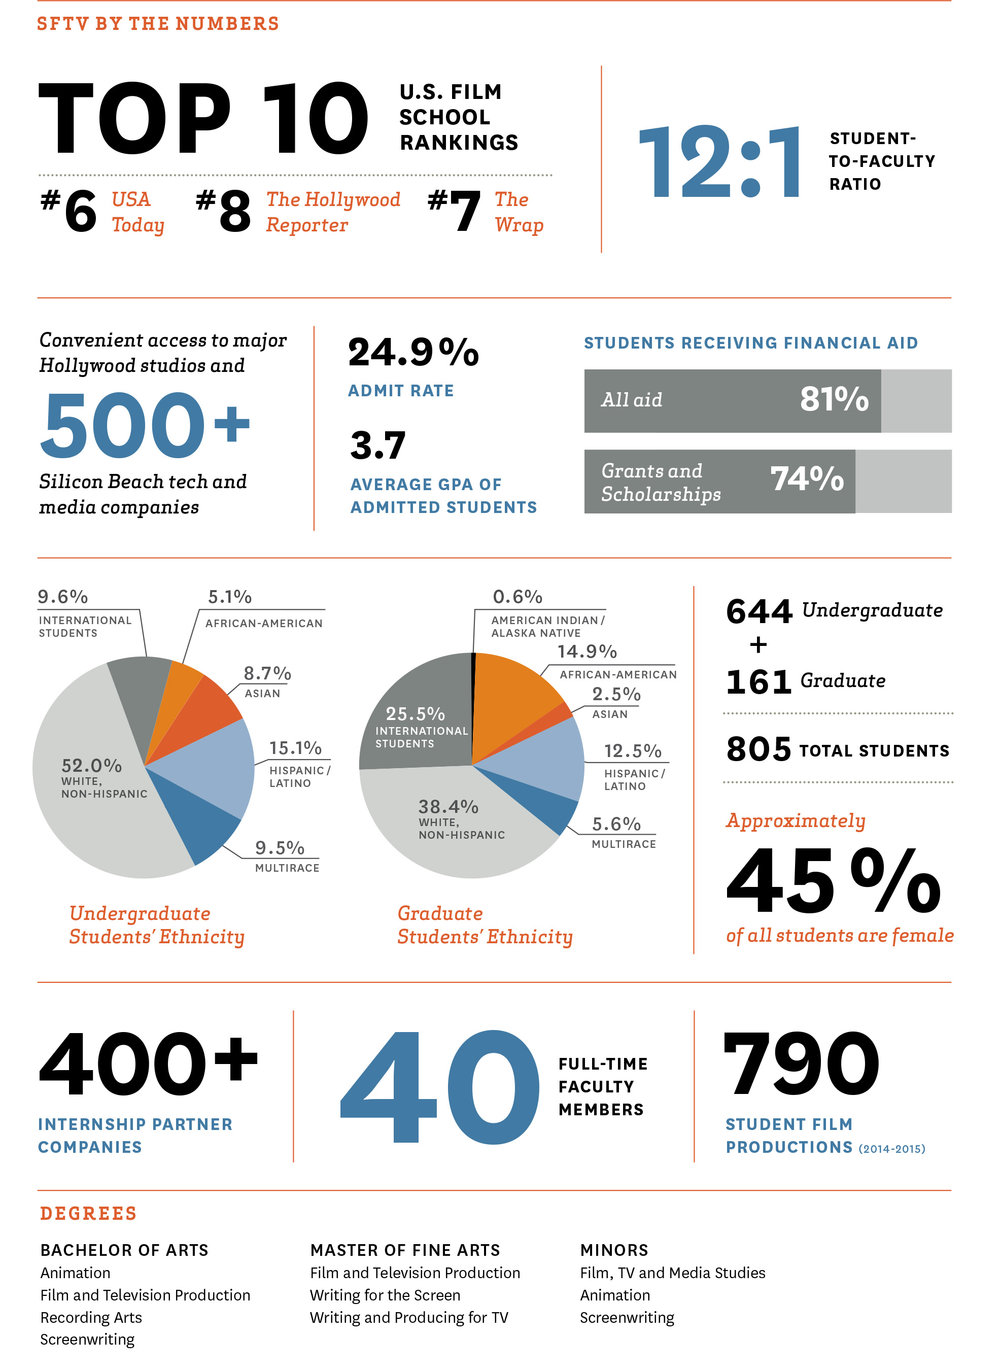 sftv-by-the-numbers.jpg